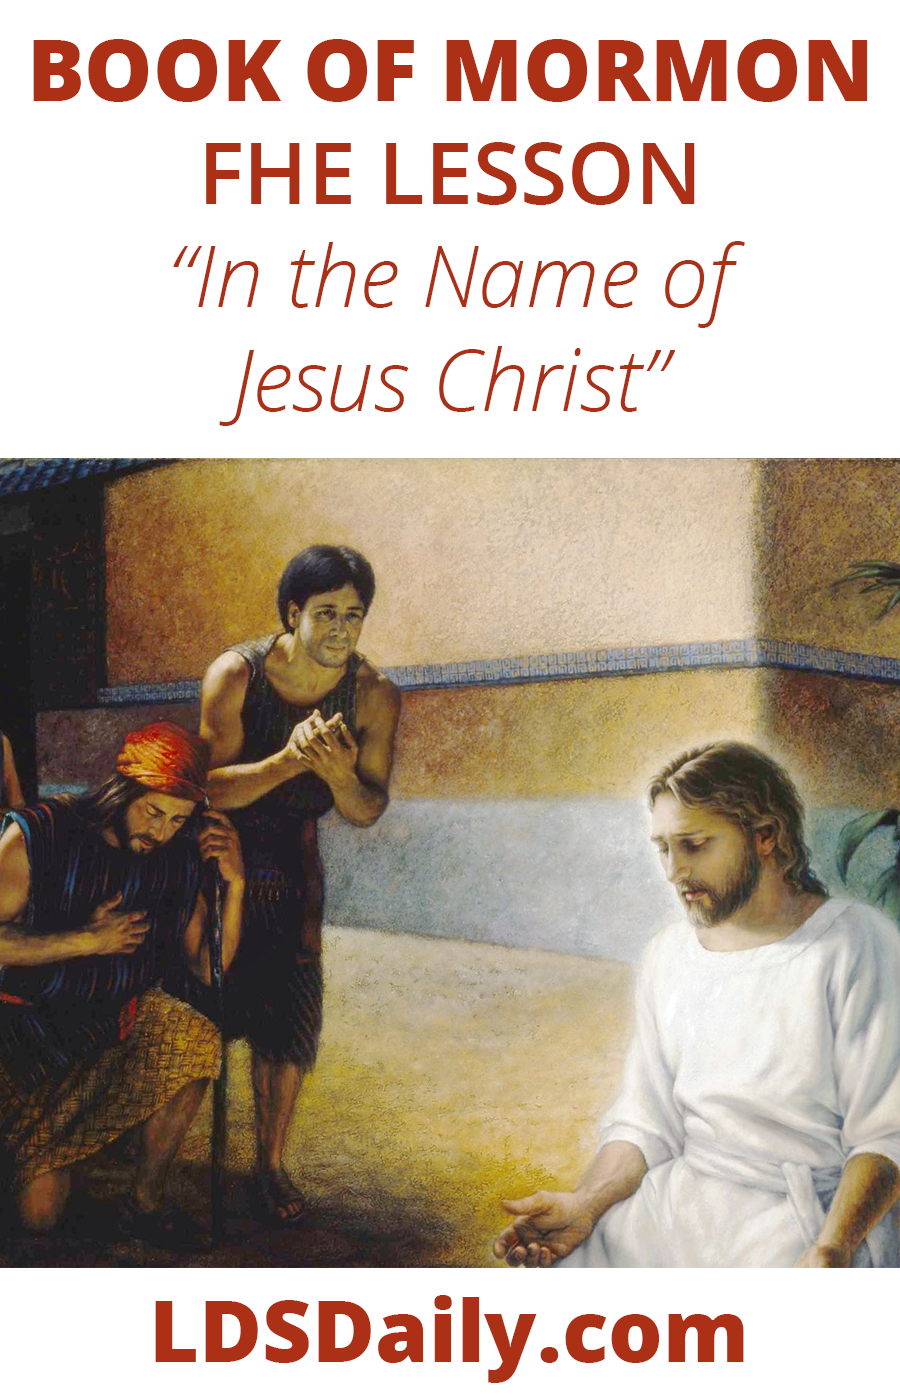 Book of Mormon FHE Lesson - In the Name of Jesus Christ PIN